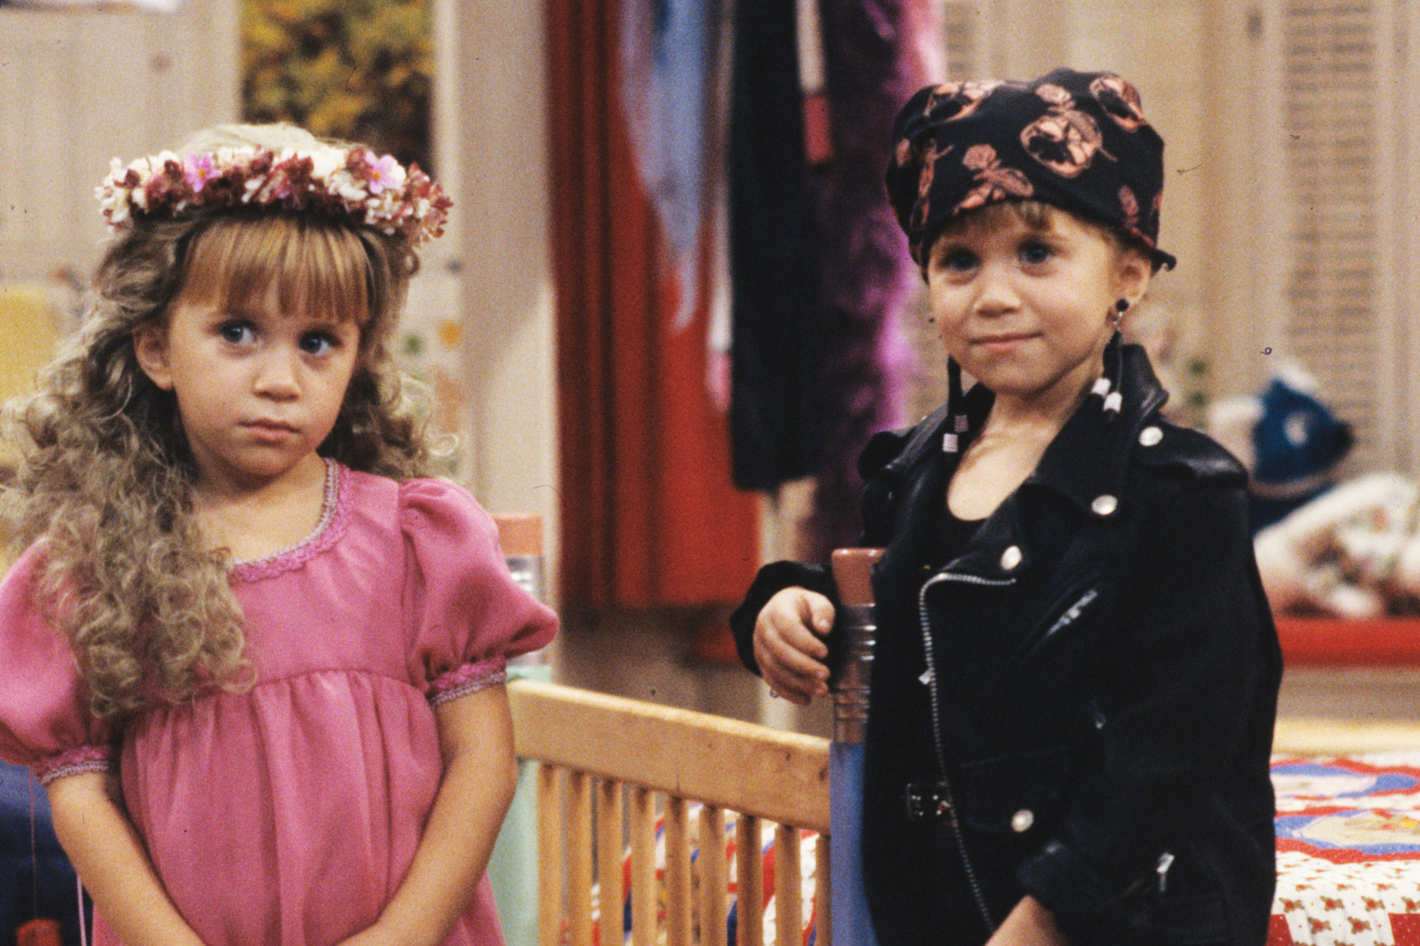 10 Life Lessons Michelle Tanner Taught Us All - GoodTimes: Lifestyle, Food, Travel, Fashion, Weddings, Bollywood, Tech, Videos & Photos